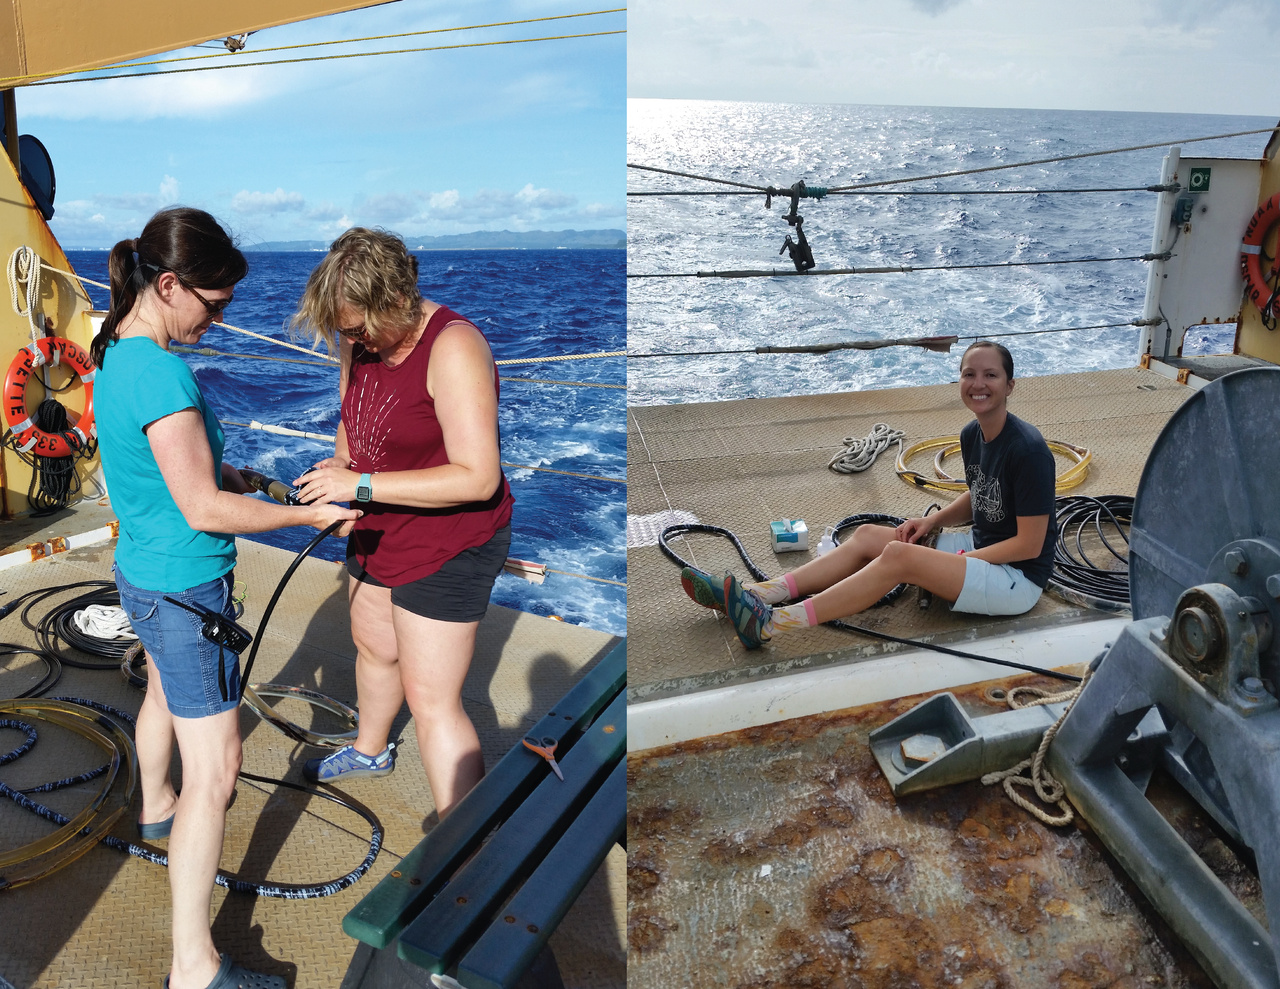 Towed acoustic hydrophone array repairs